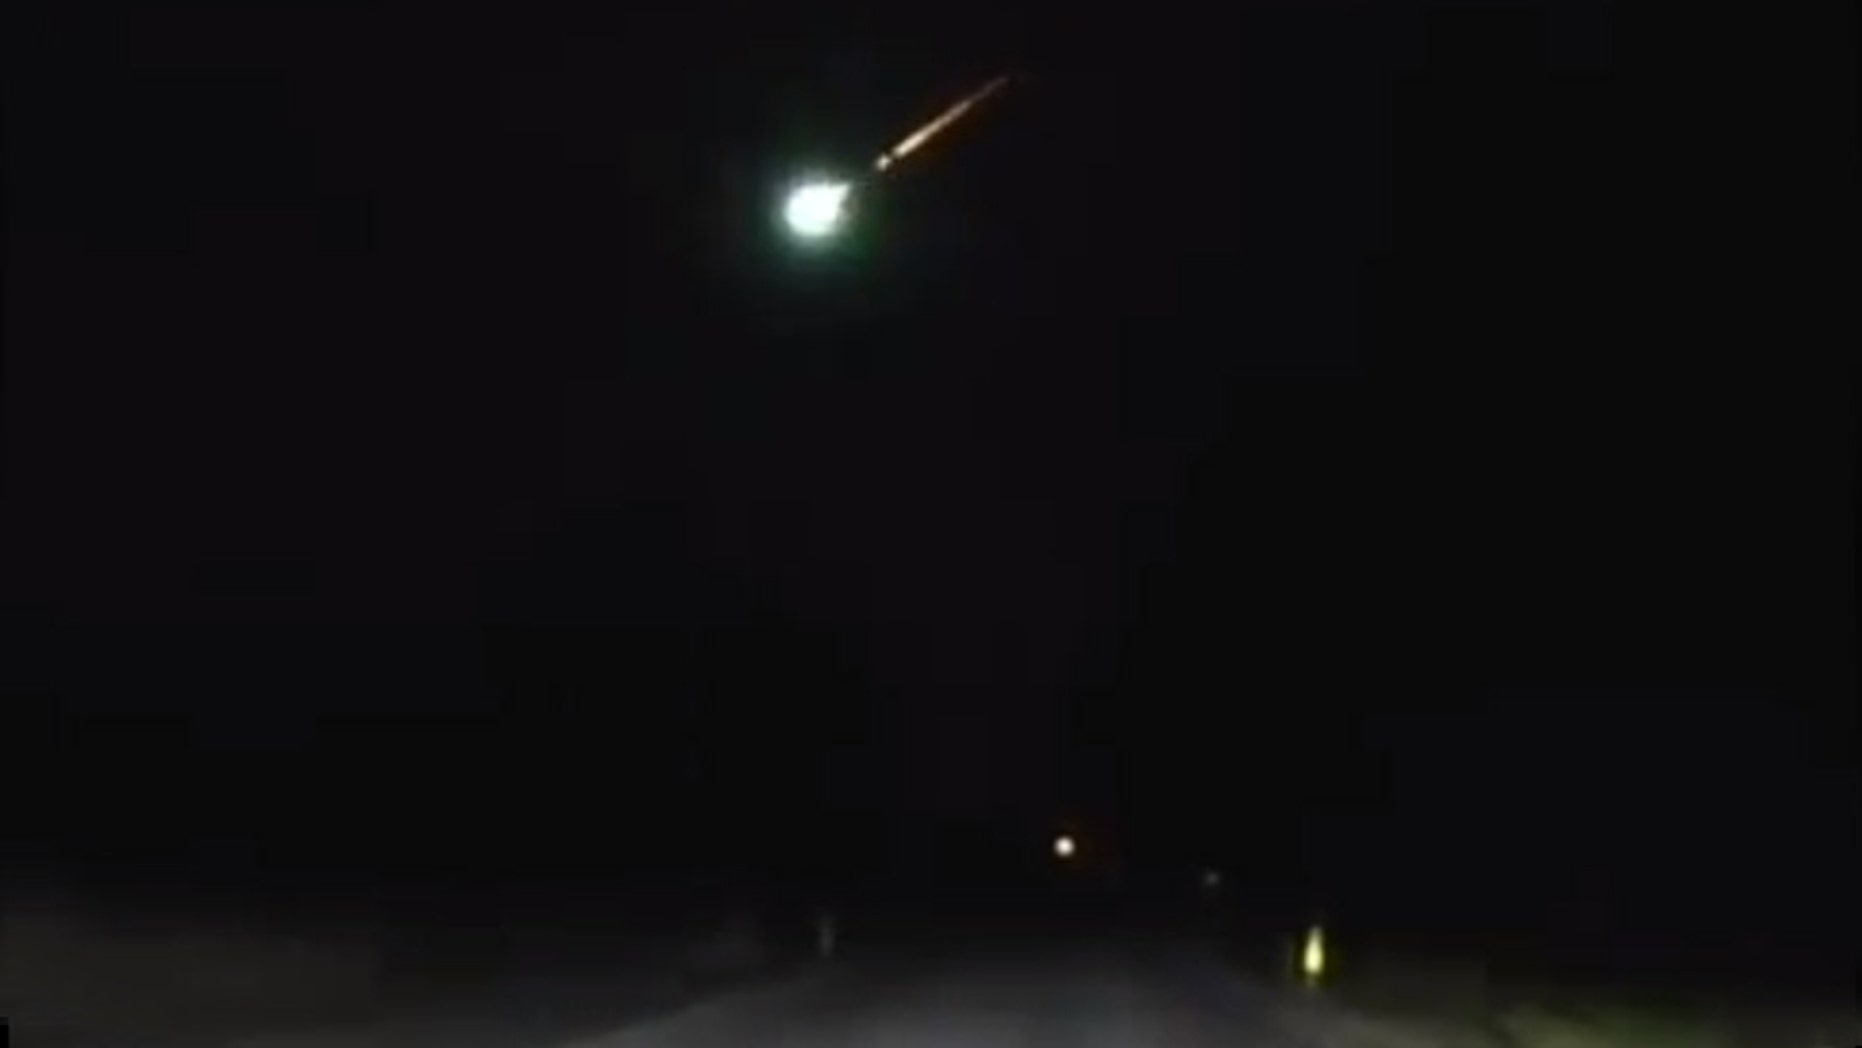 All eyes were on the evening sky Sunday as residents across nine Midwestern states reported seeing a fireball (like the one pictured above) fly by.